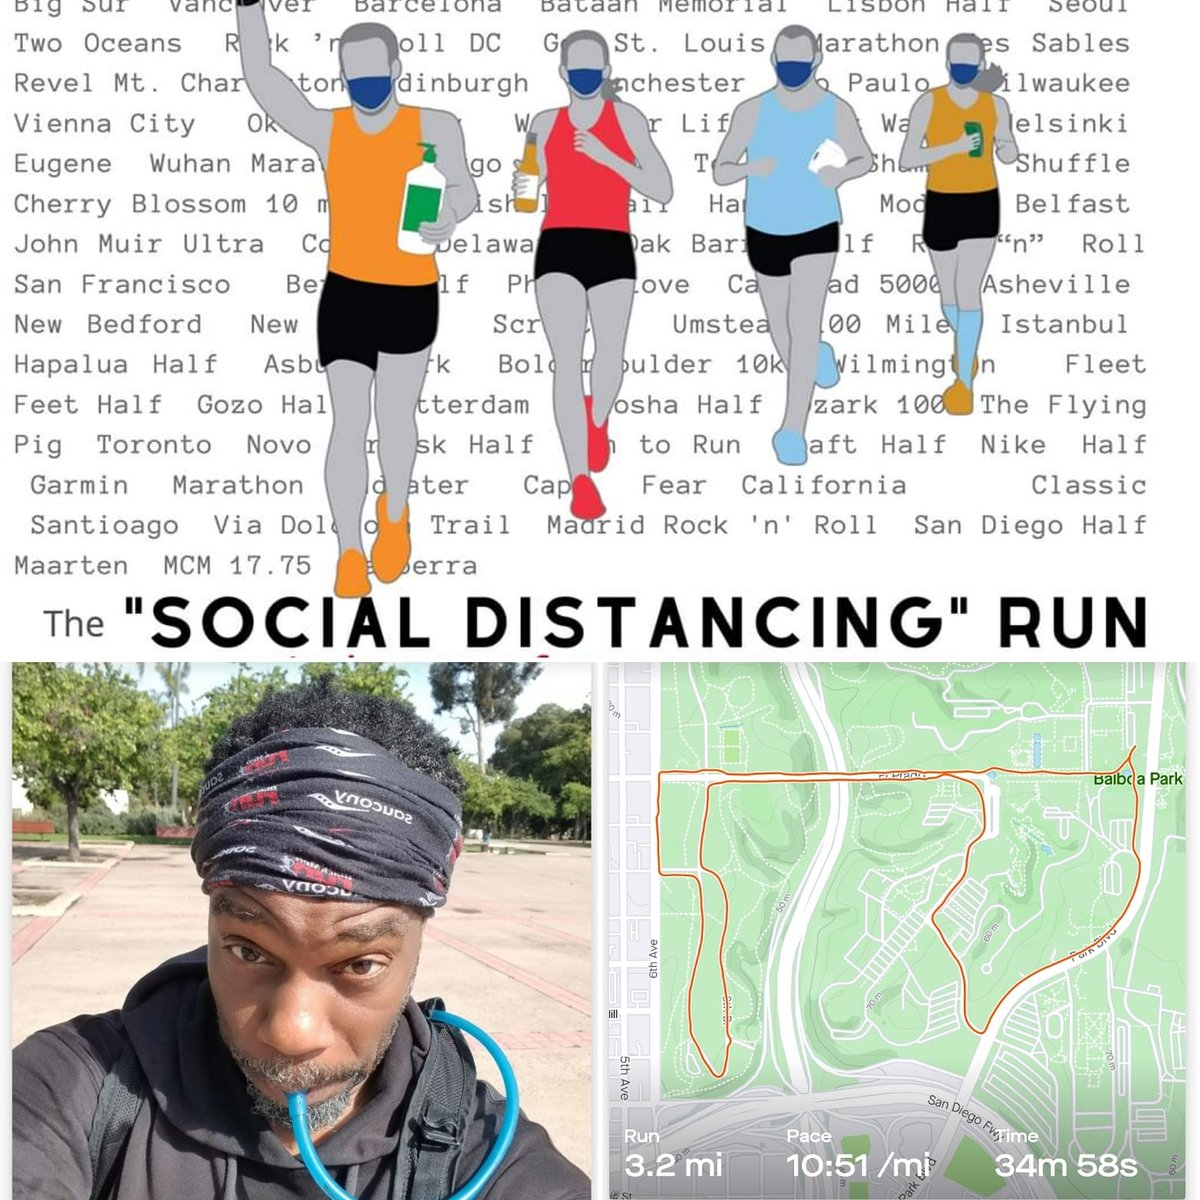 "#RunStreak Day 1539 was ""lite"" #5k at the Inaugural #SocialDistancingRun (#VirtualRun) thanks to the #MarathonTrainingAcademy! #LiveWellSD #Covid19 #CantStopWontStop  #RWRunstreak #Runstreak #blkrunners #BlackMenRun #BlackMenRunSD #heartrunnerspic.twitter.com/JVMbxRIhN8"